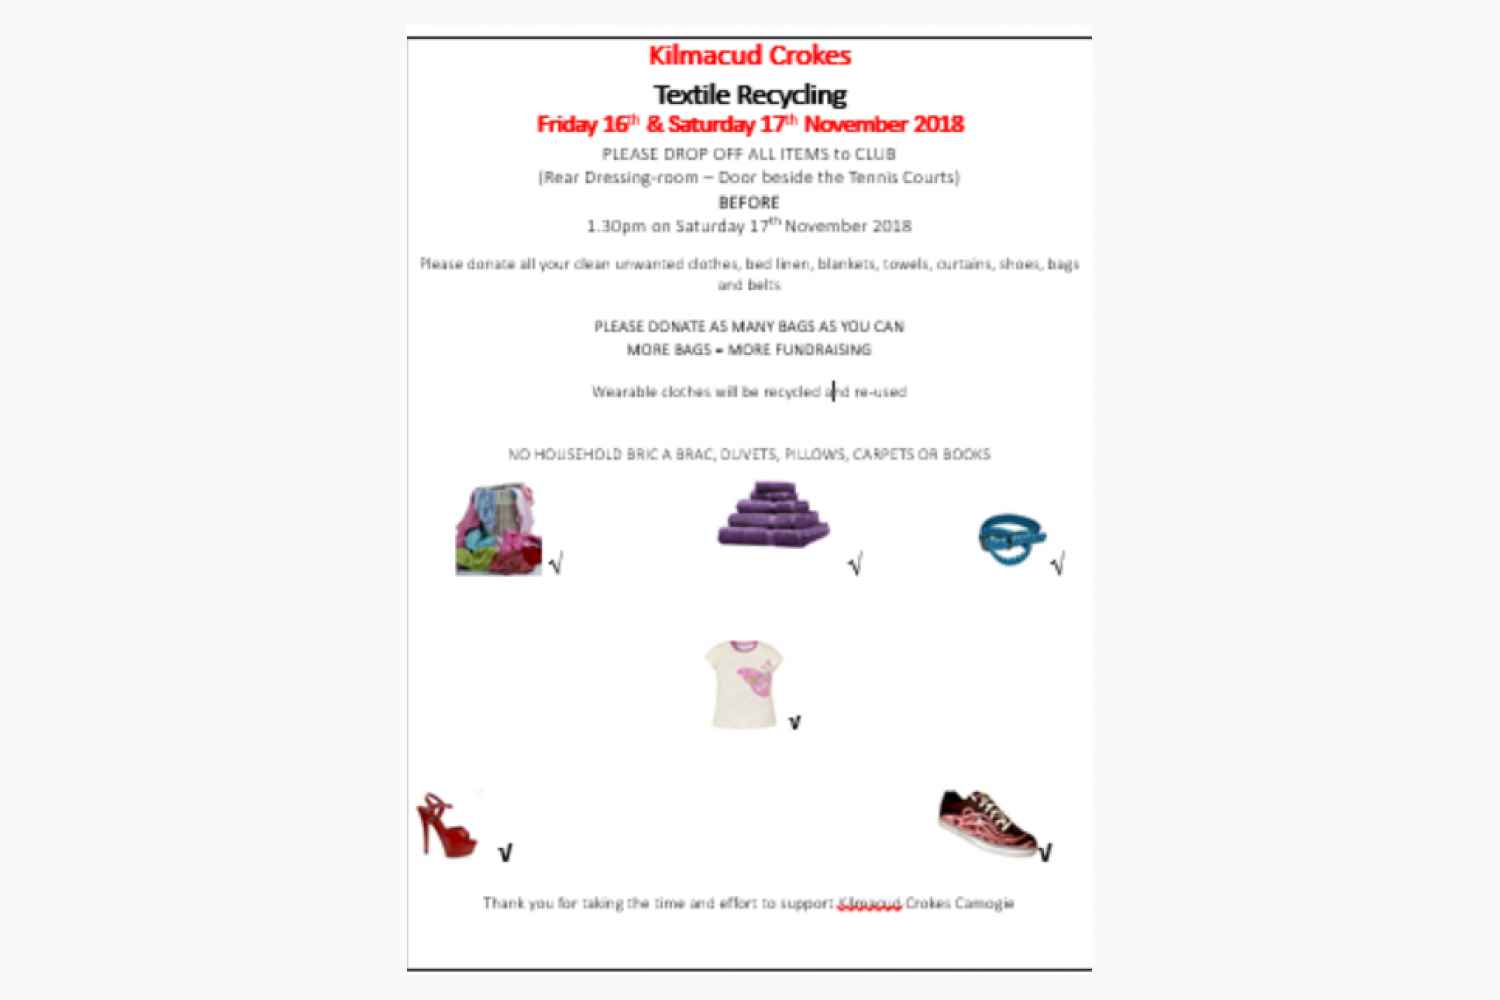 Camogie Textile Recycling  Friday 16th & Saturday 17th November 2018